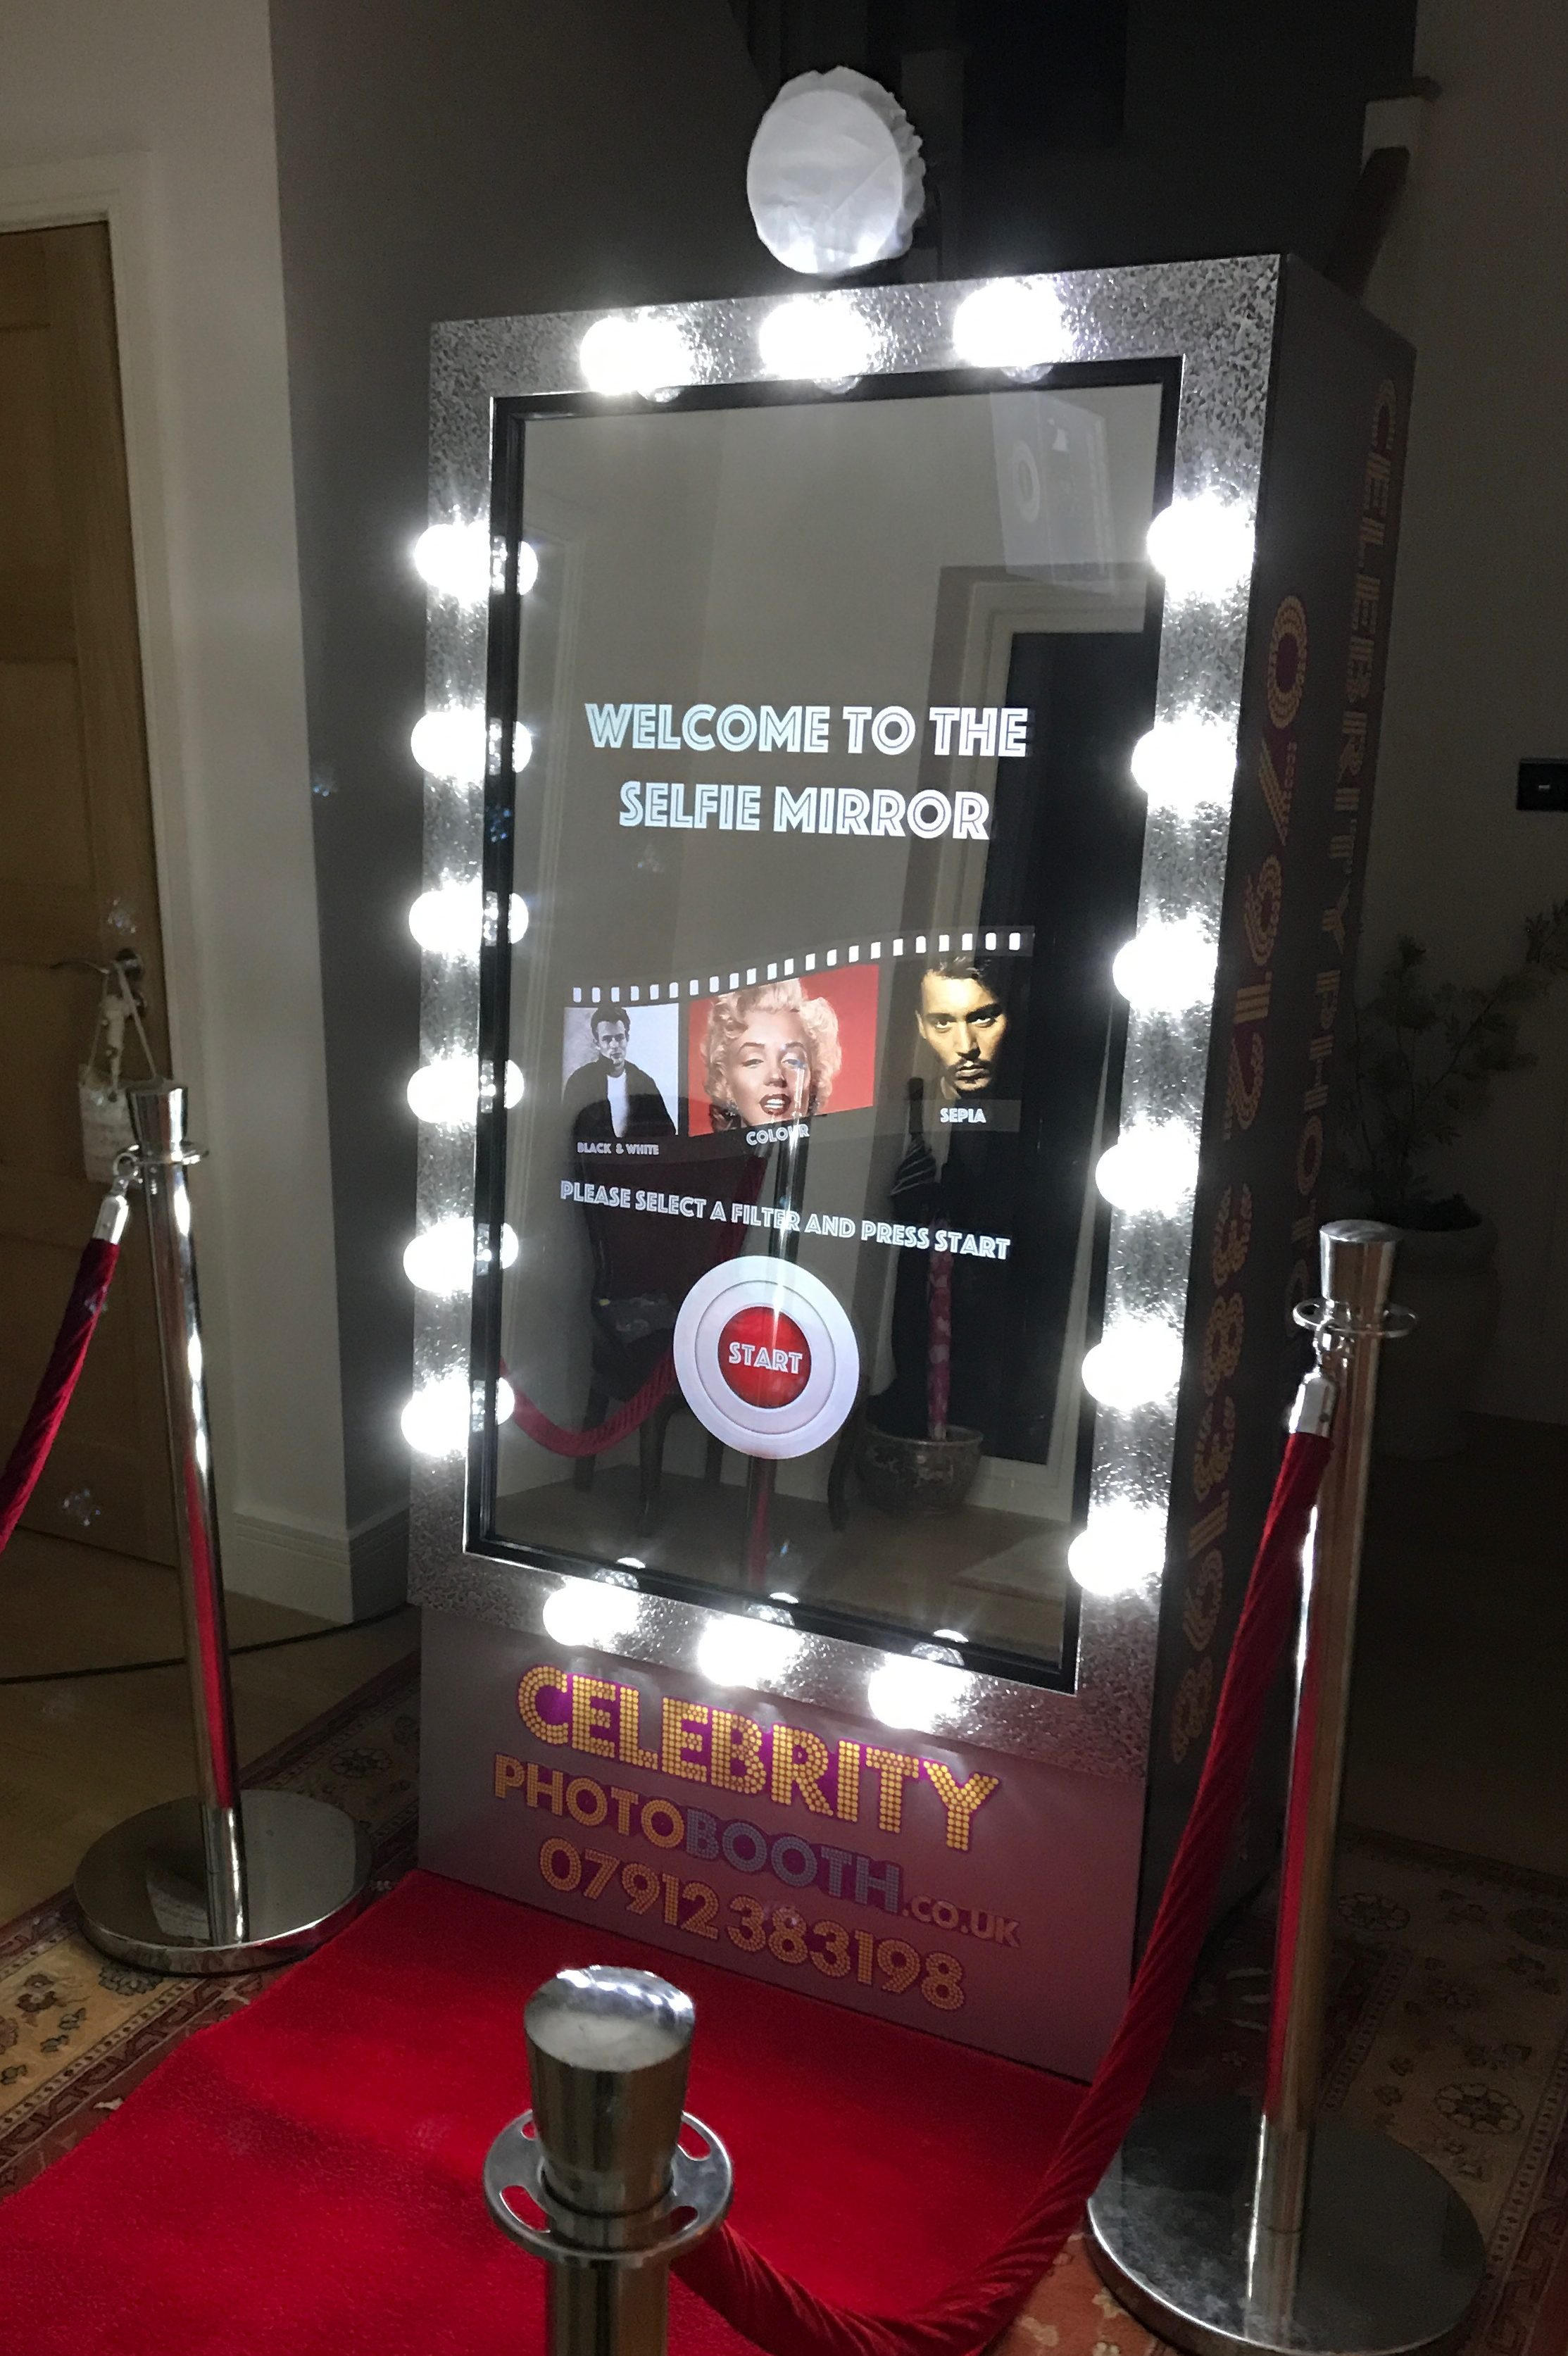 Celebrity Photo Booth - Photo Booth Hire - 07912 383198